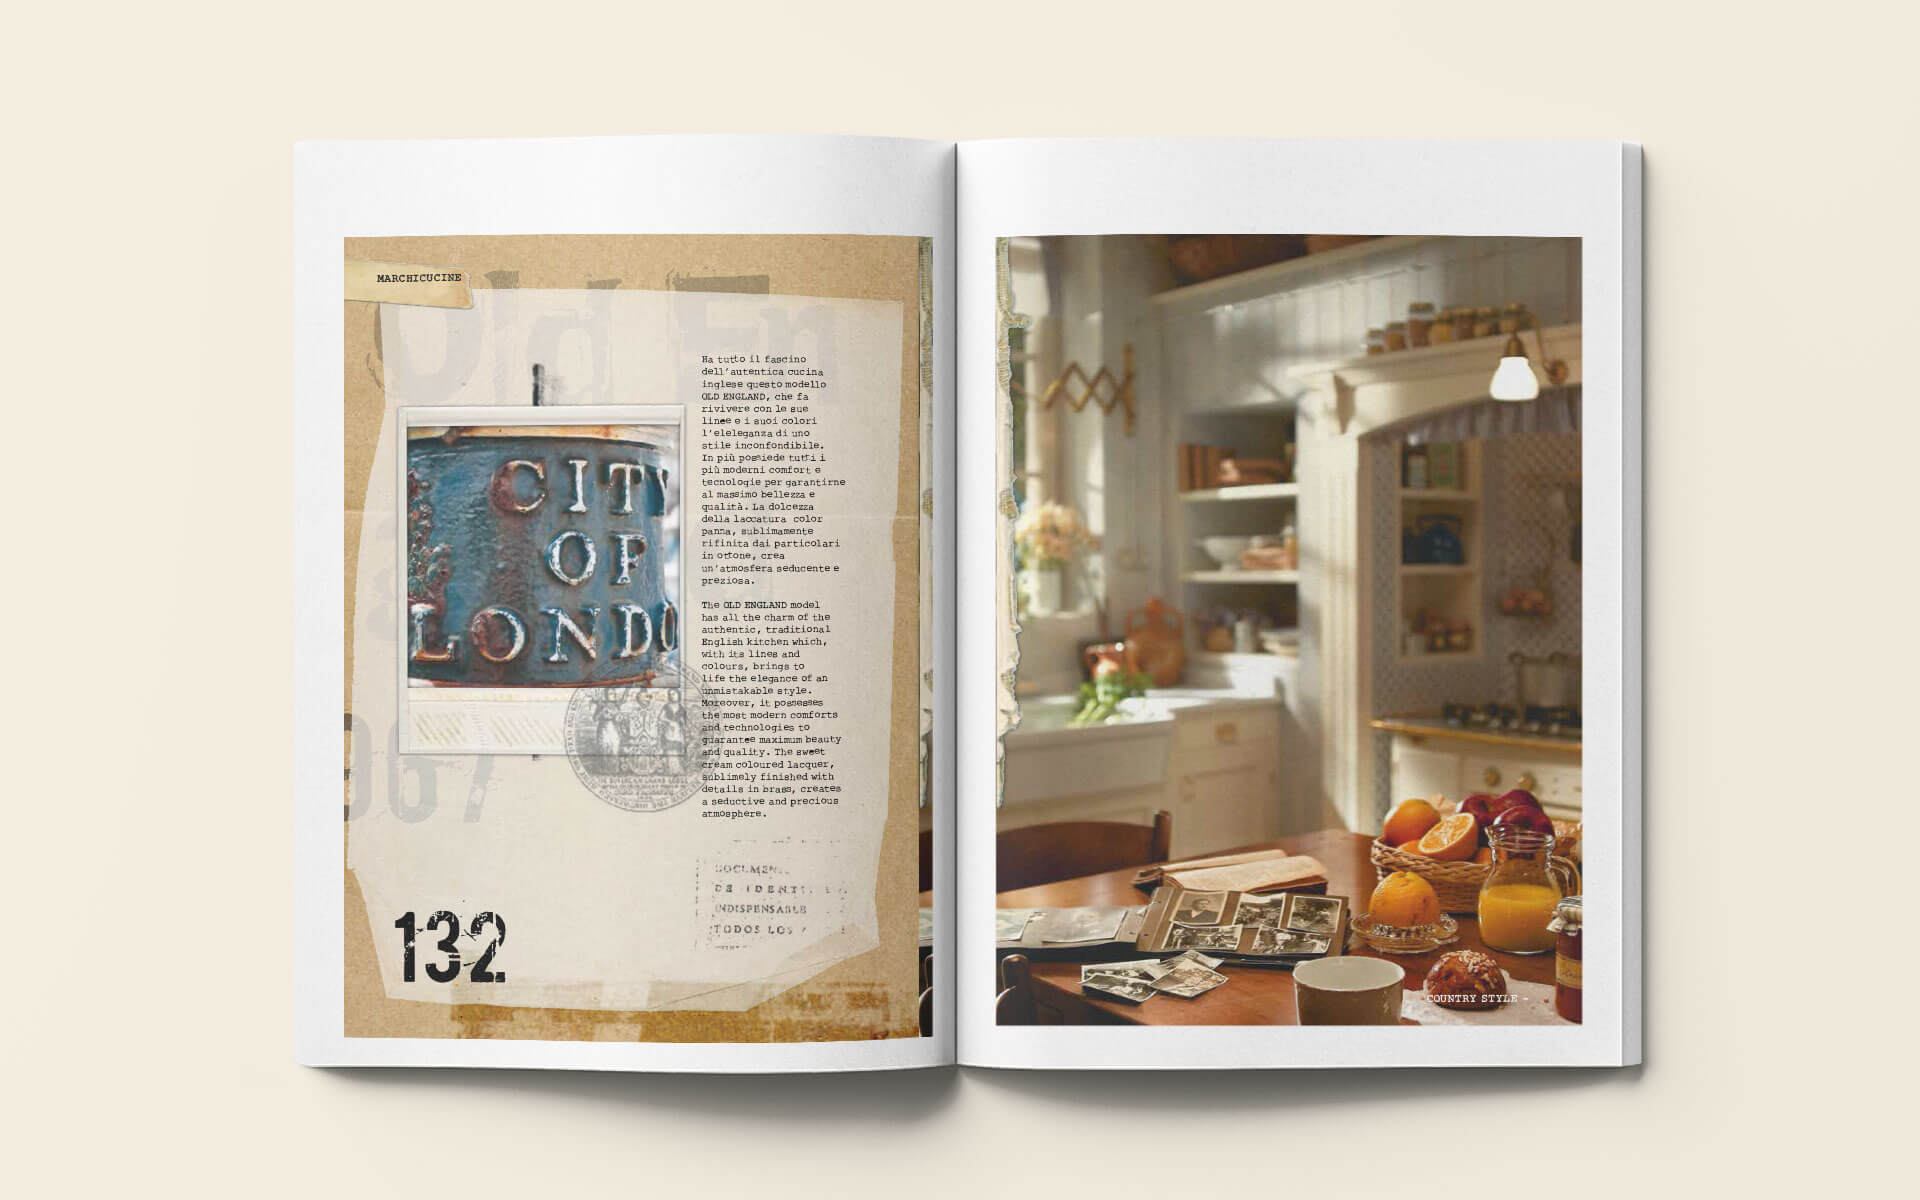 Catalogo Old England - Marchi Cucine Made in Italy